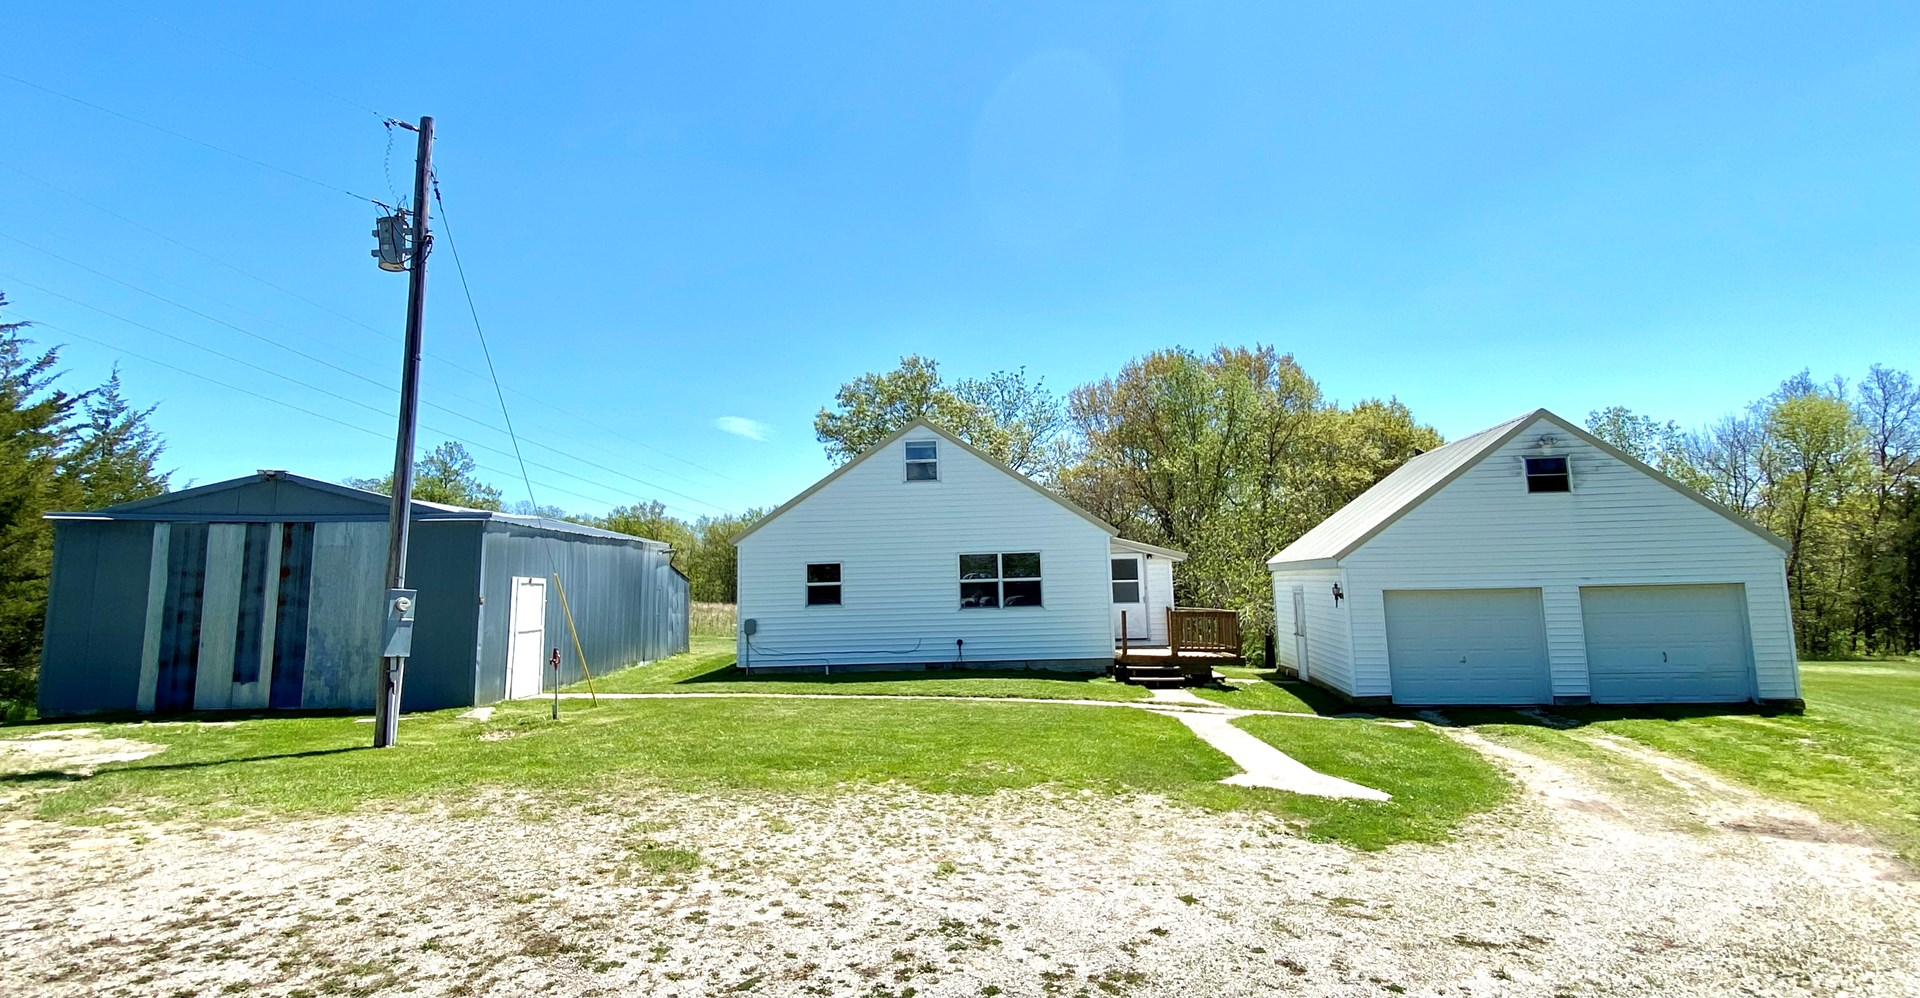 For Sale Country Home on Small Acreage in Mercer Co.